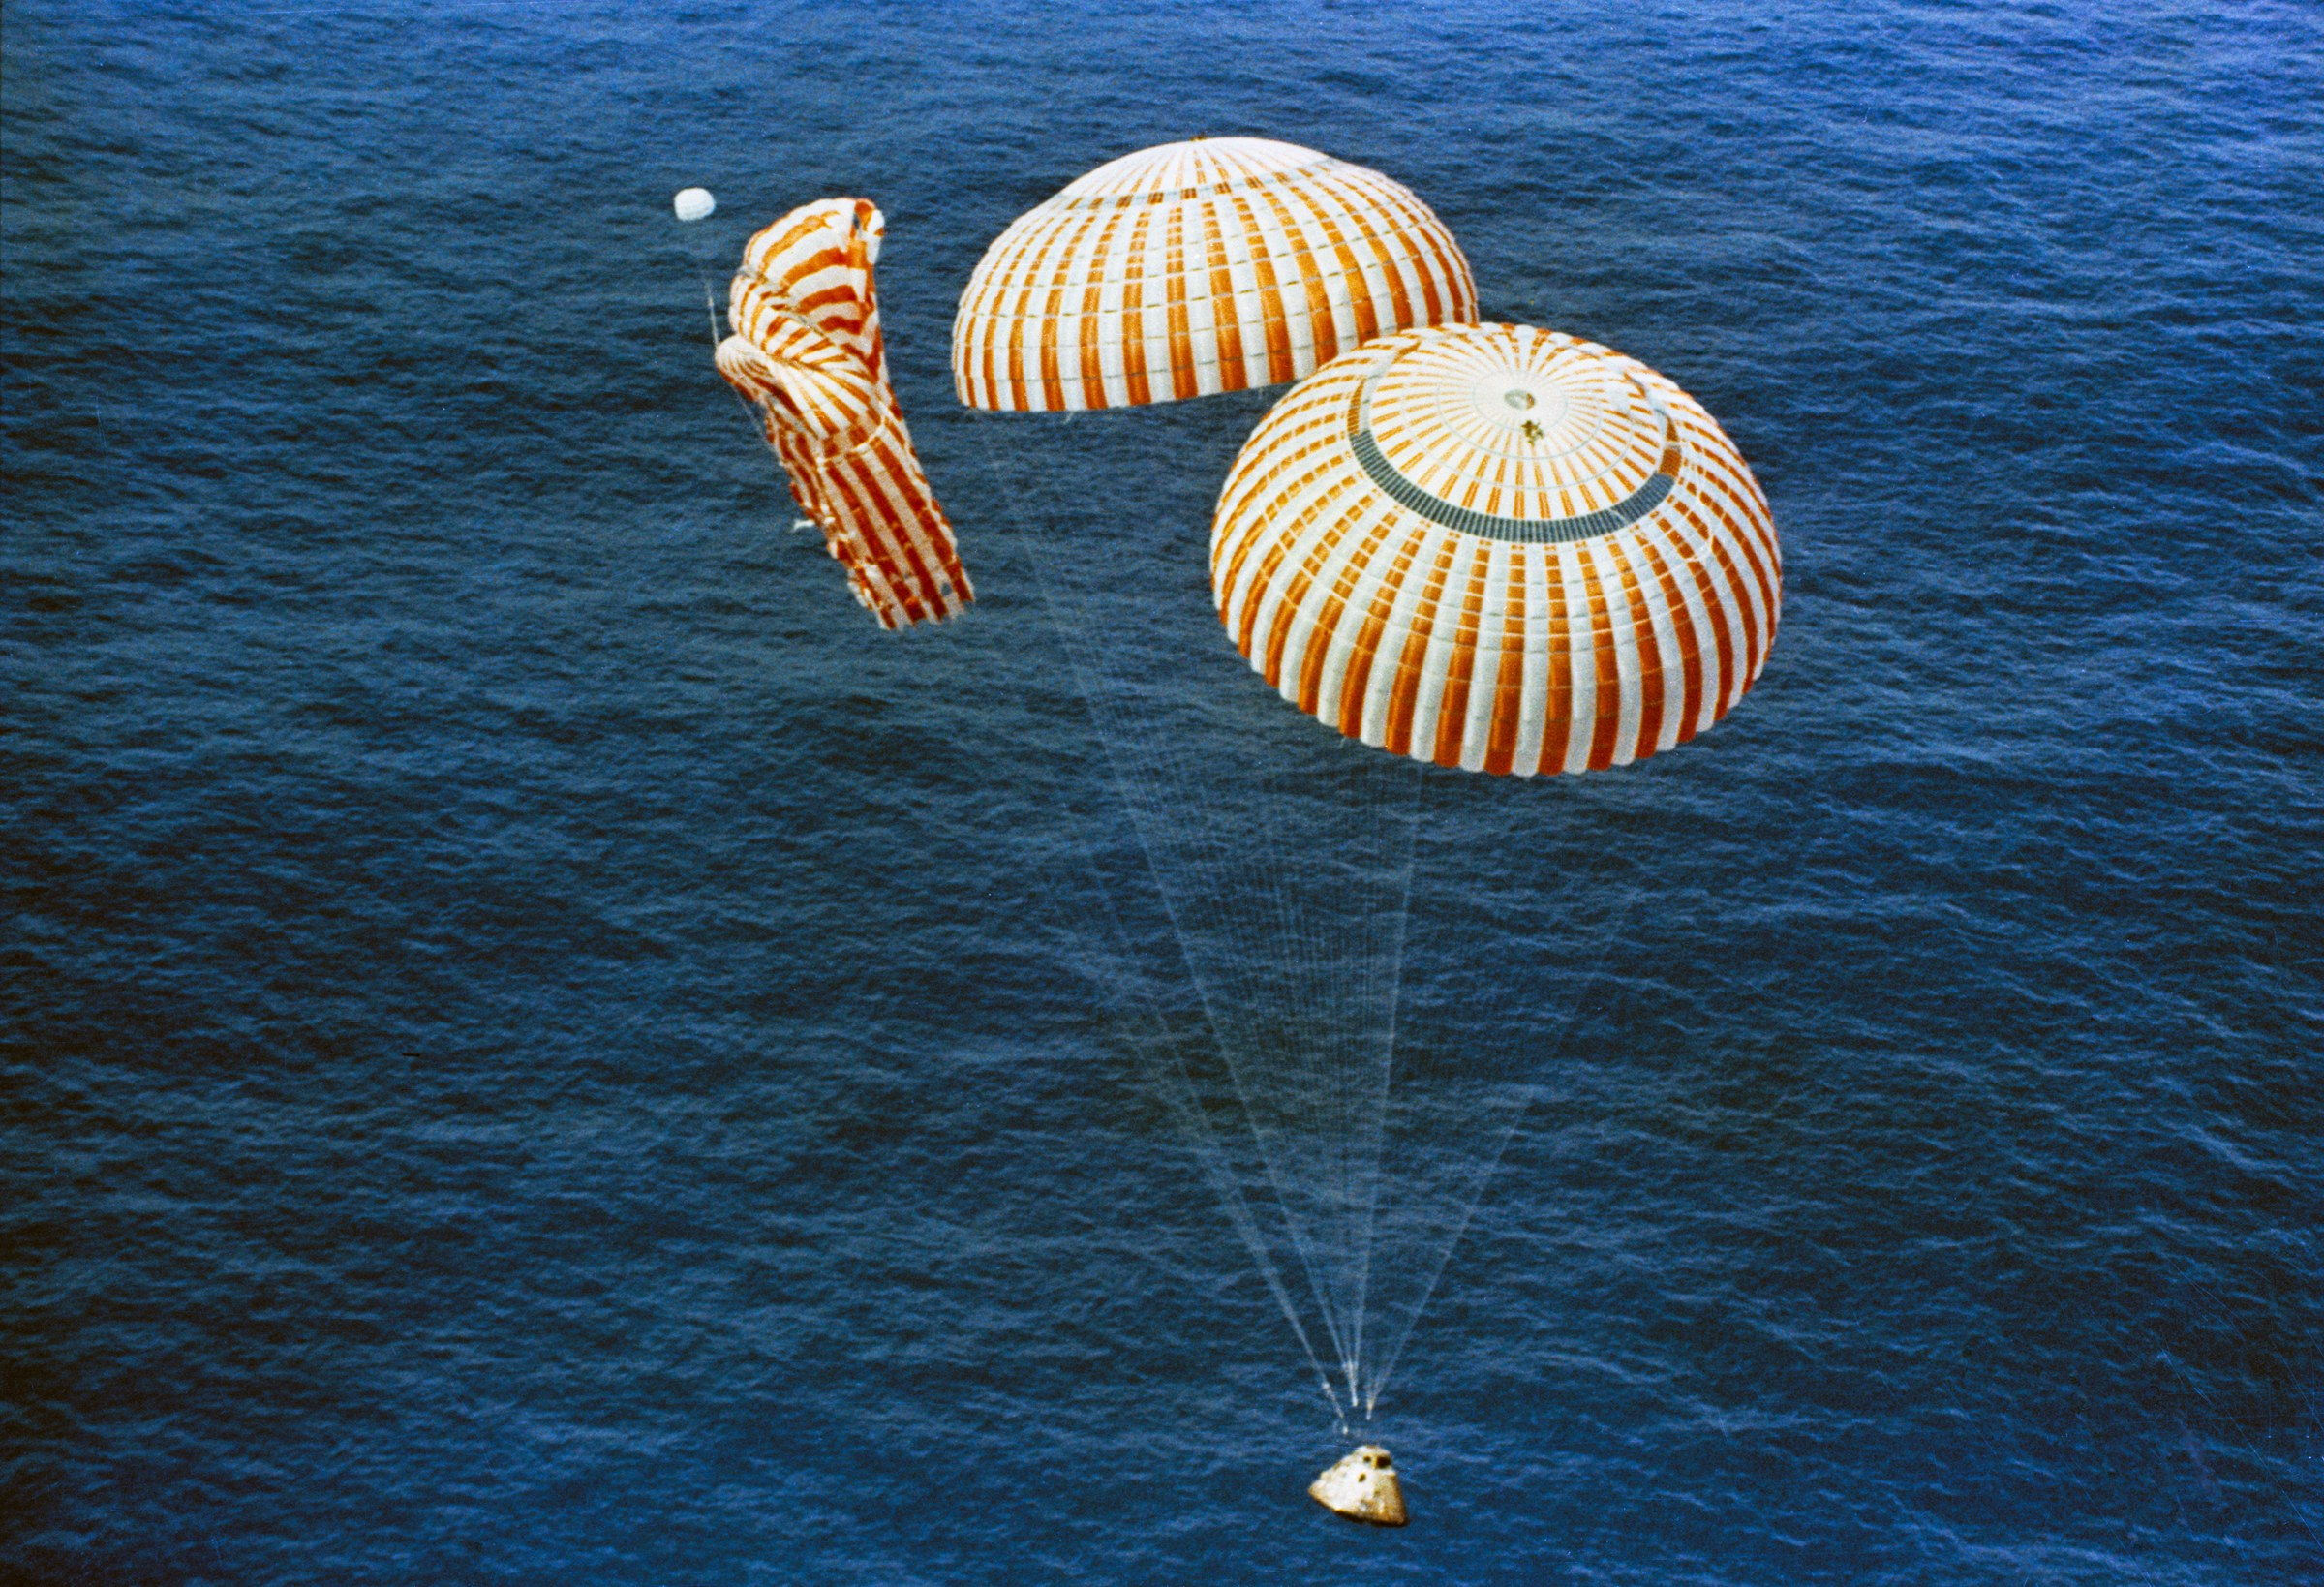 apollo 11 splashdown location - photo #9